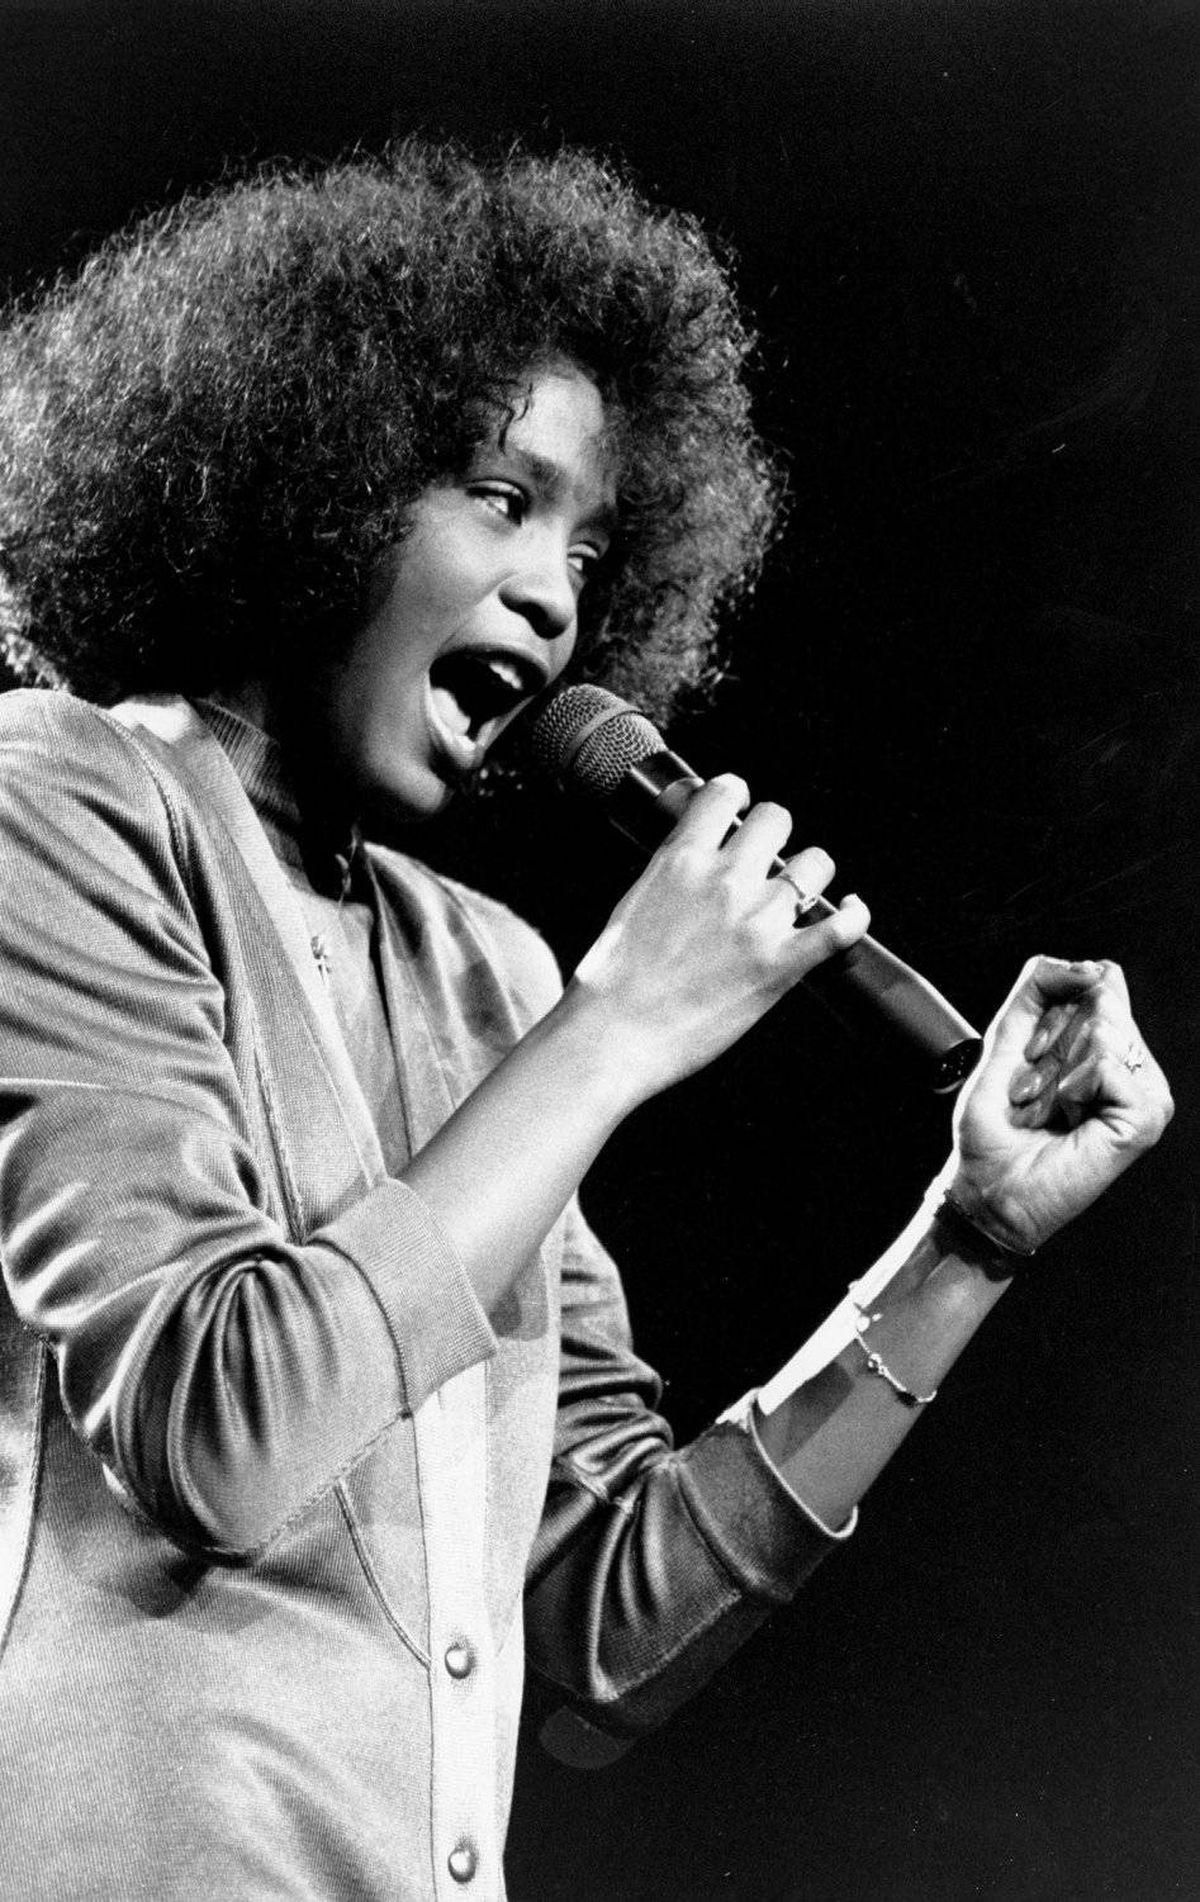 Whitney Houston belts out a song during her segment of a benefit concert at Boston Garden on May 10, 1986.